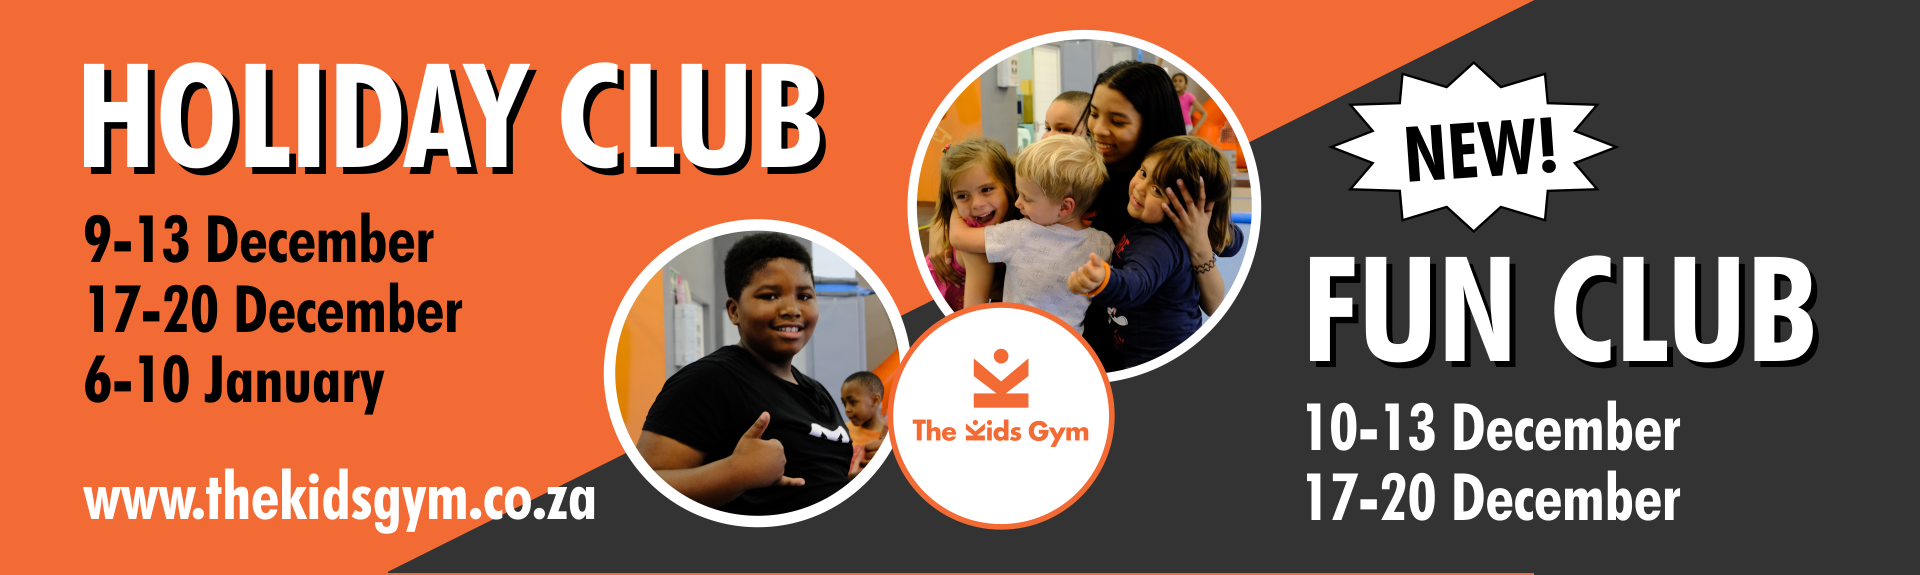 The Kids Gym Holiday Club Johannesburg